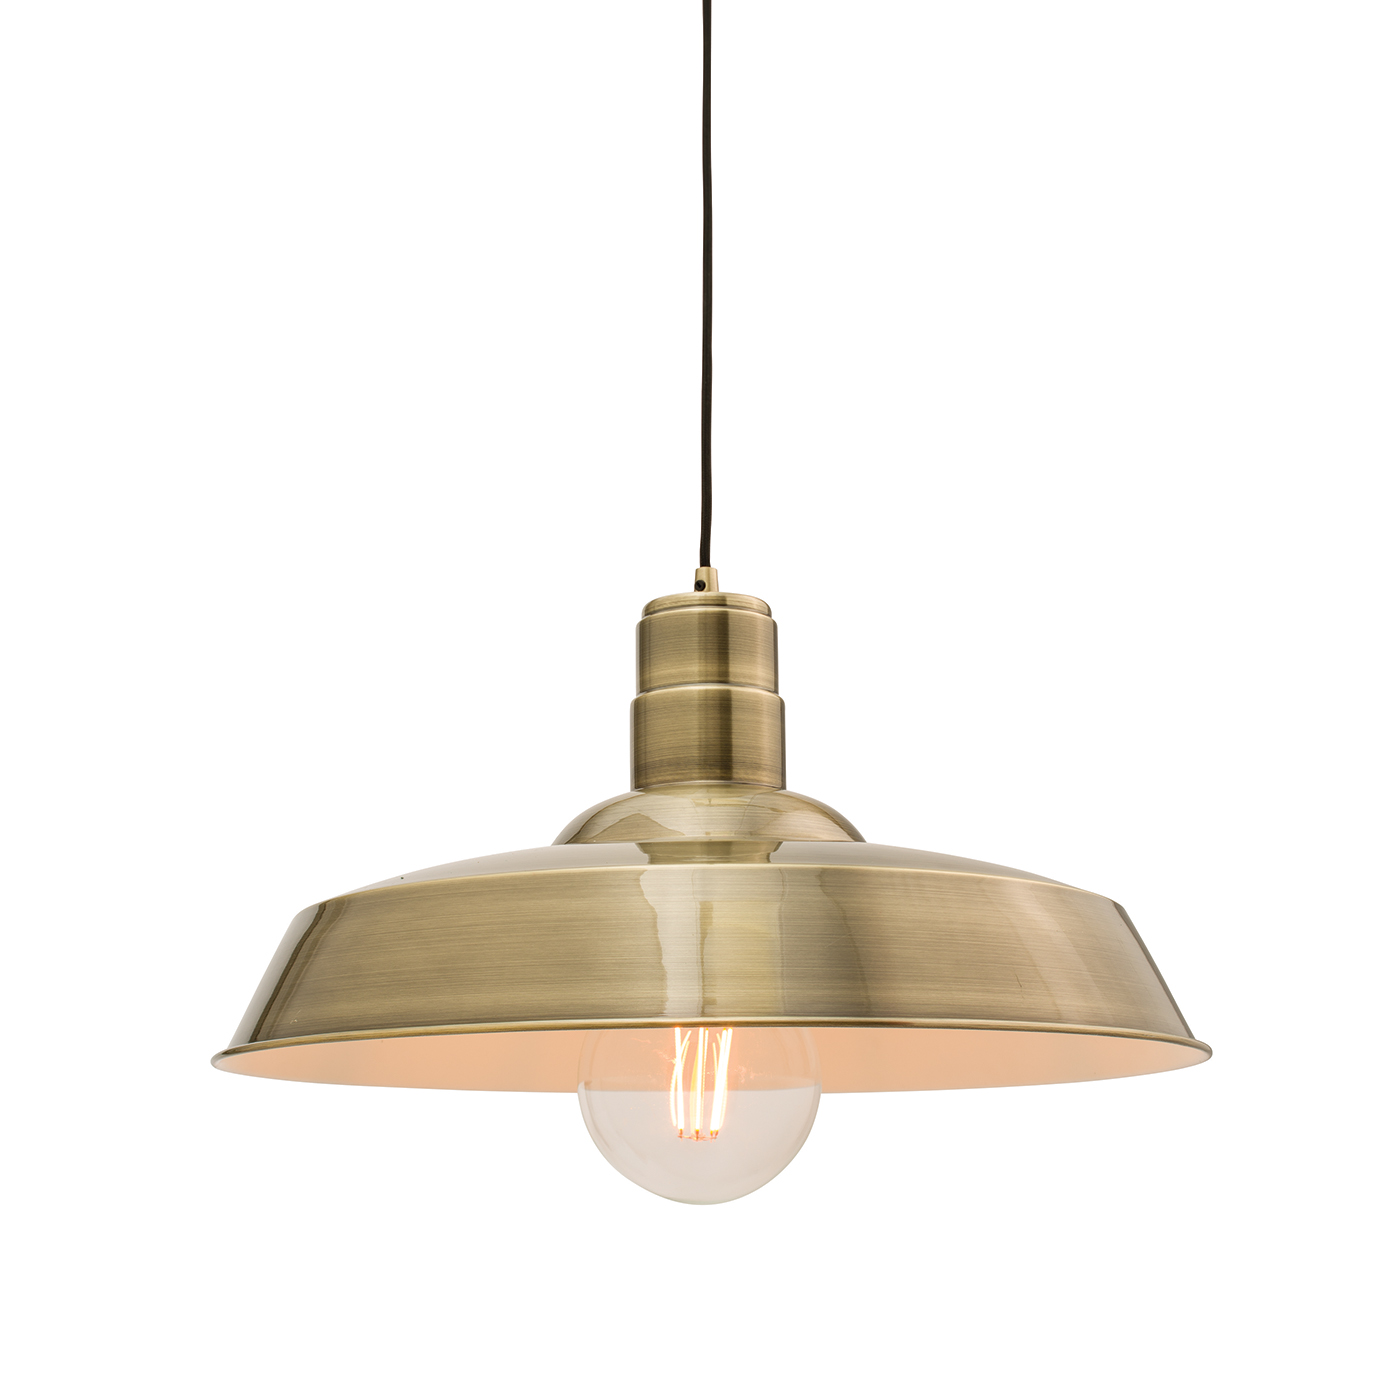 Endon Moore pendant 1x 60W Gloss antique brass plate